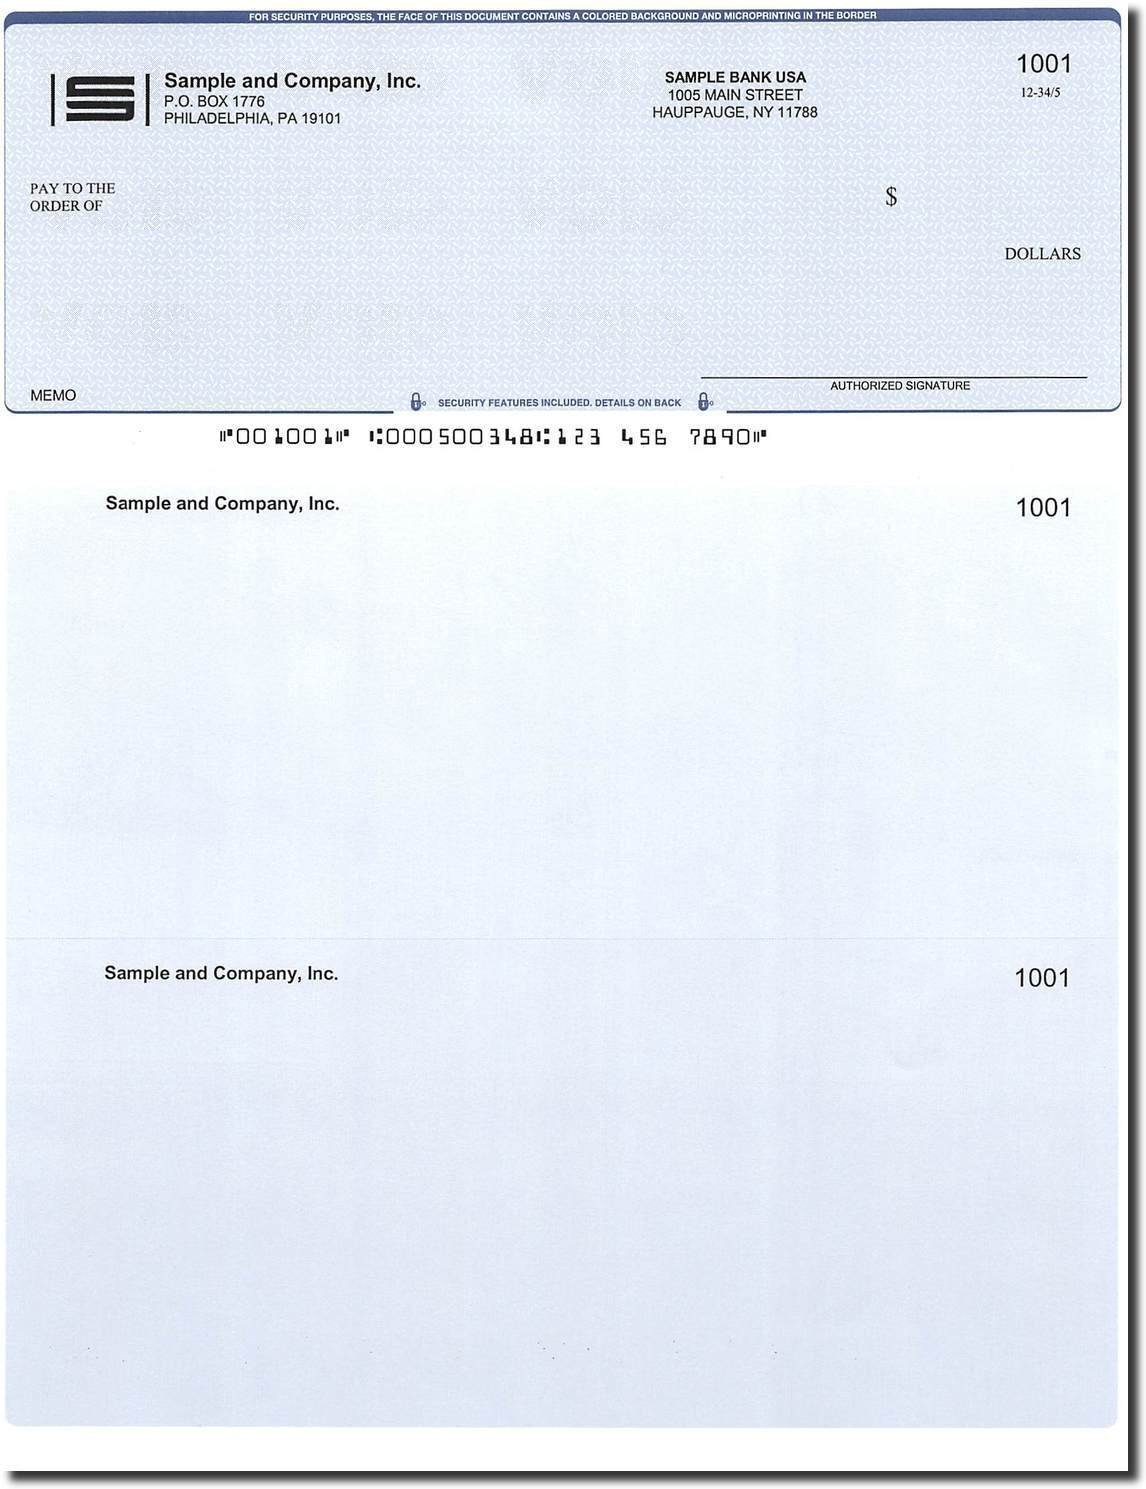 1000 Computer Checks on Top - Printed - Compatible for QuickBooks (Blue Diamond)